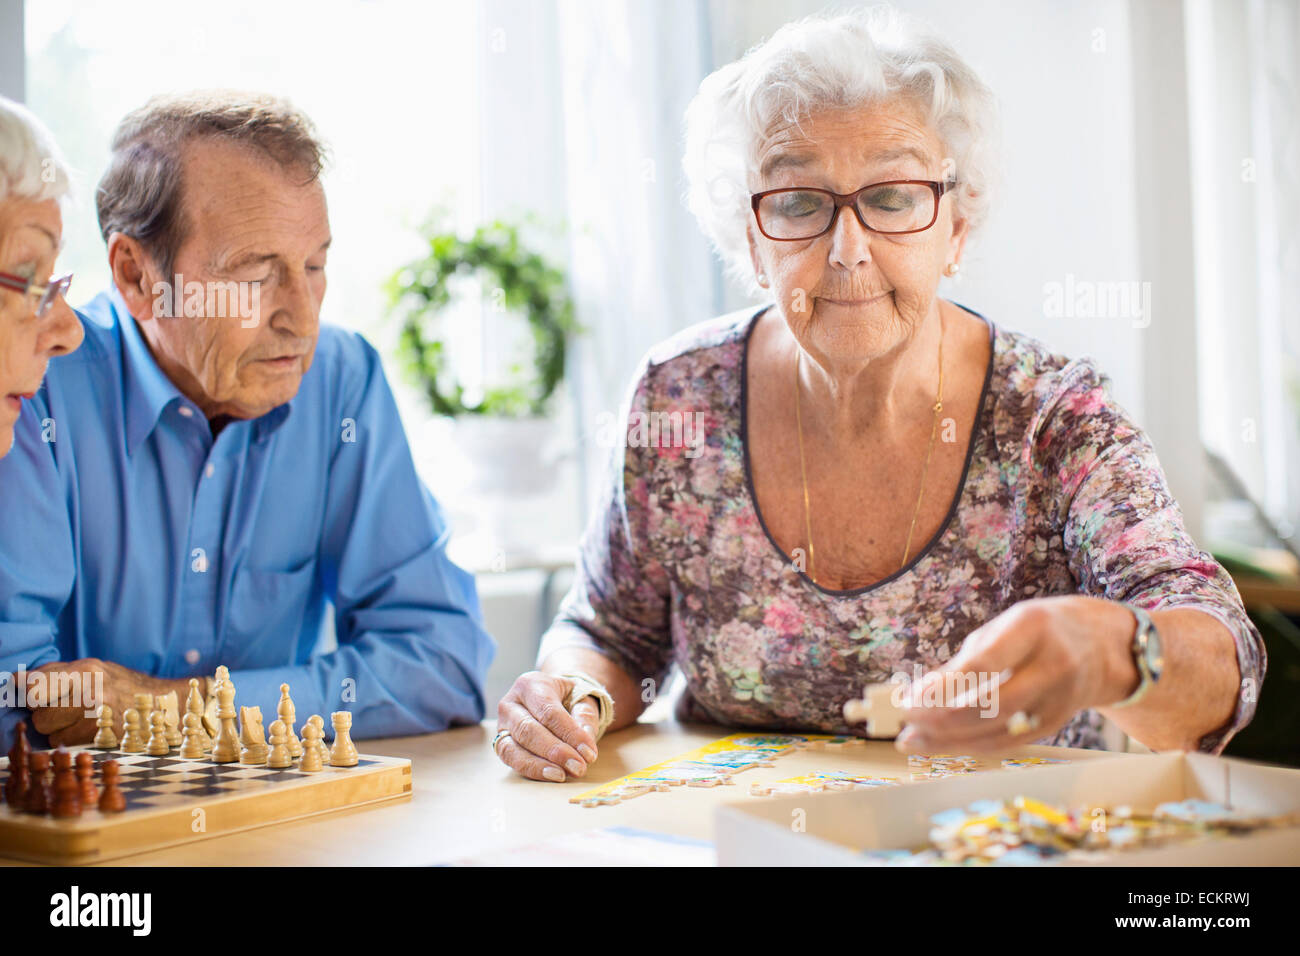 Senior people playing leisure games at table in nursing home - Stock Image